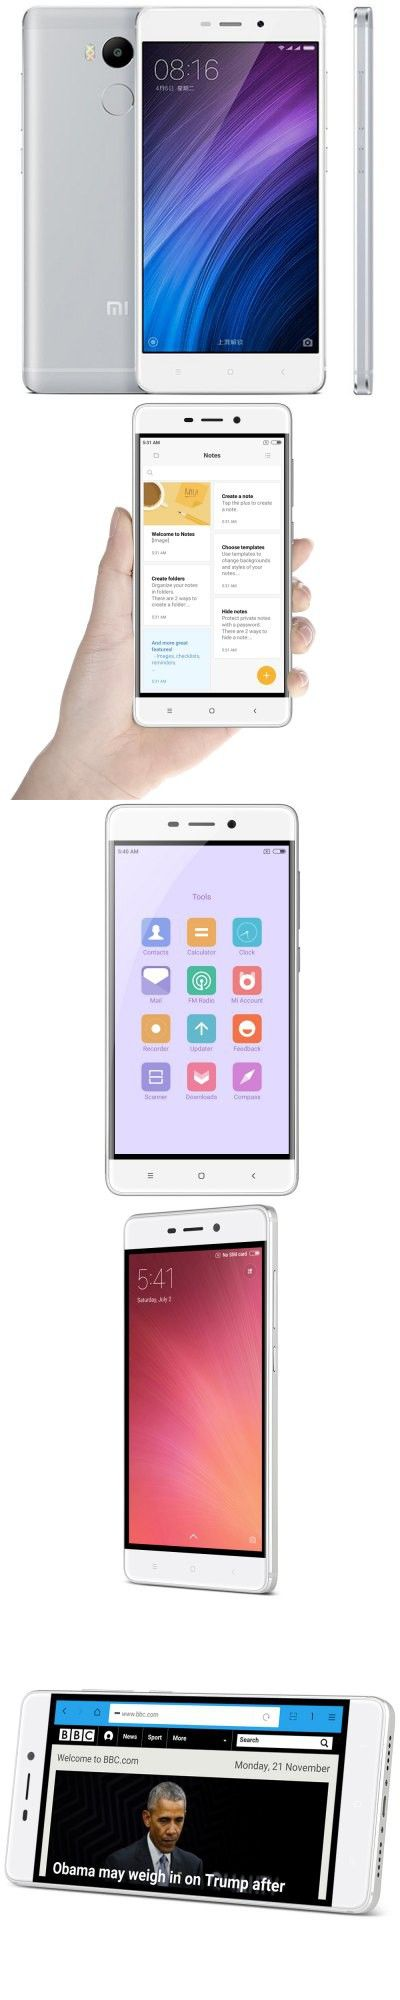 Xiaomi Redmi 4 4G Smartphone INTERNATIONAL VERSION + HK WAREHOUSE-167.66